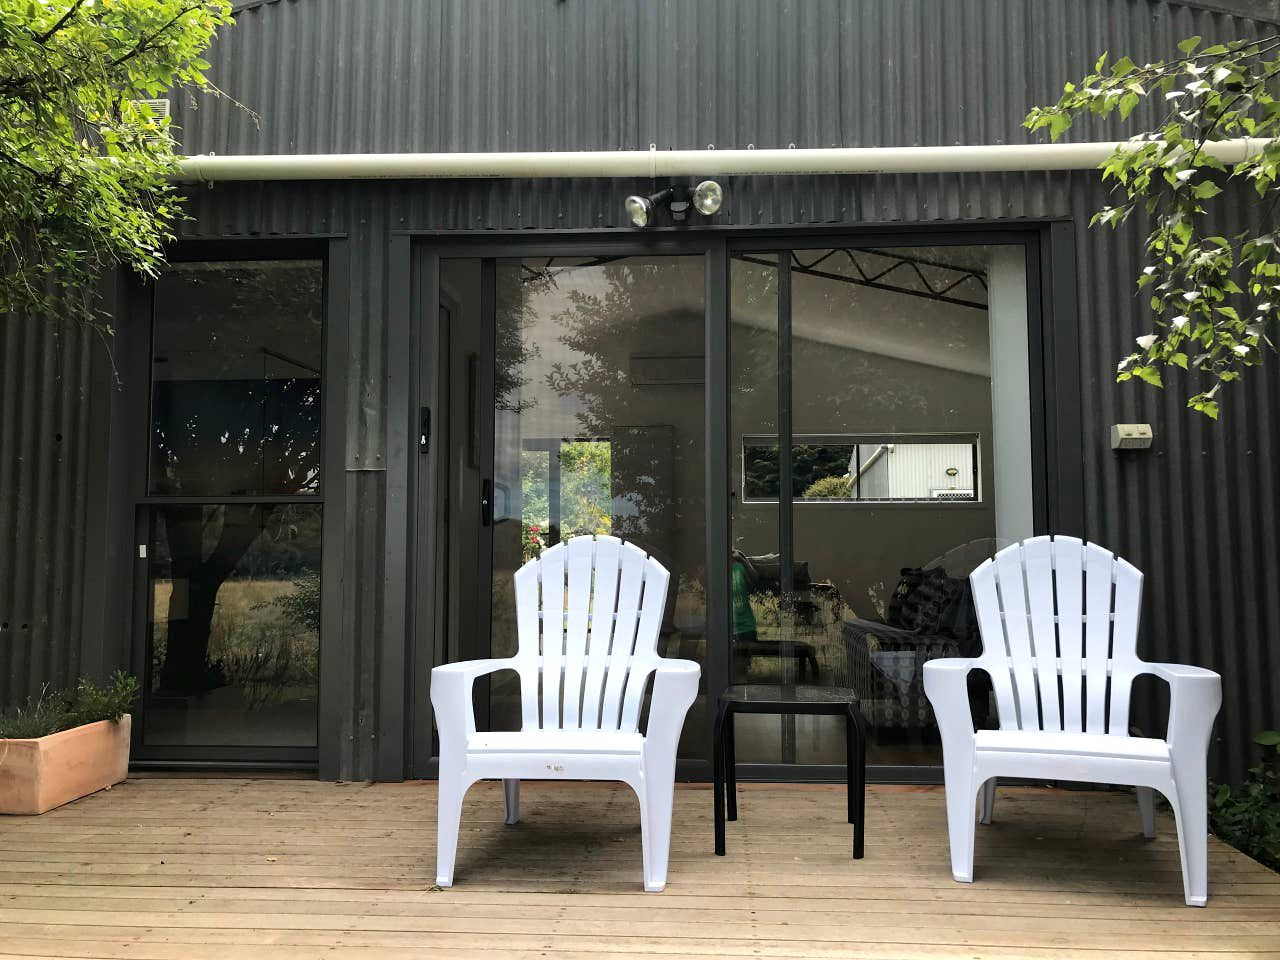 This lovely Port Campbell accommodation is located on a working farm near the Great Otway National Park, perfect for weekend getaways!